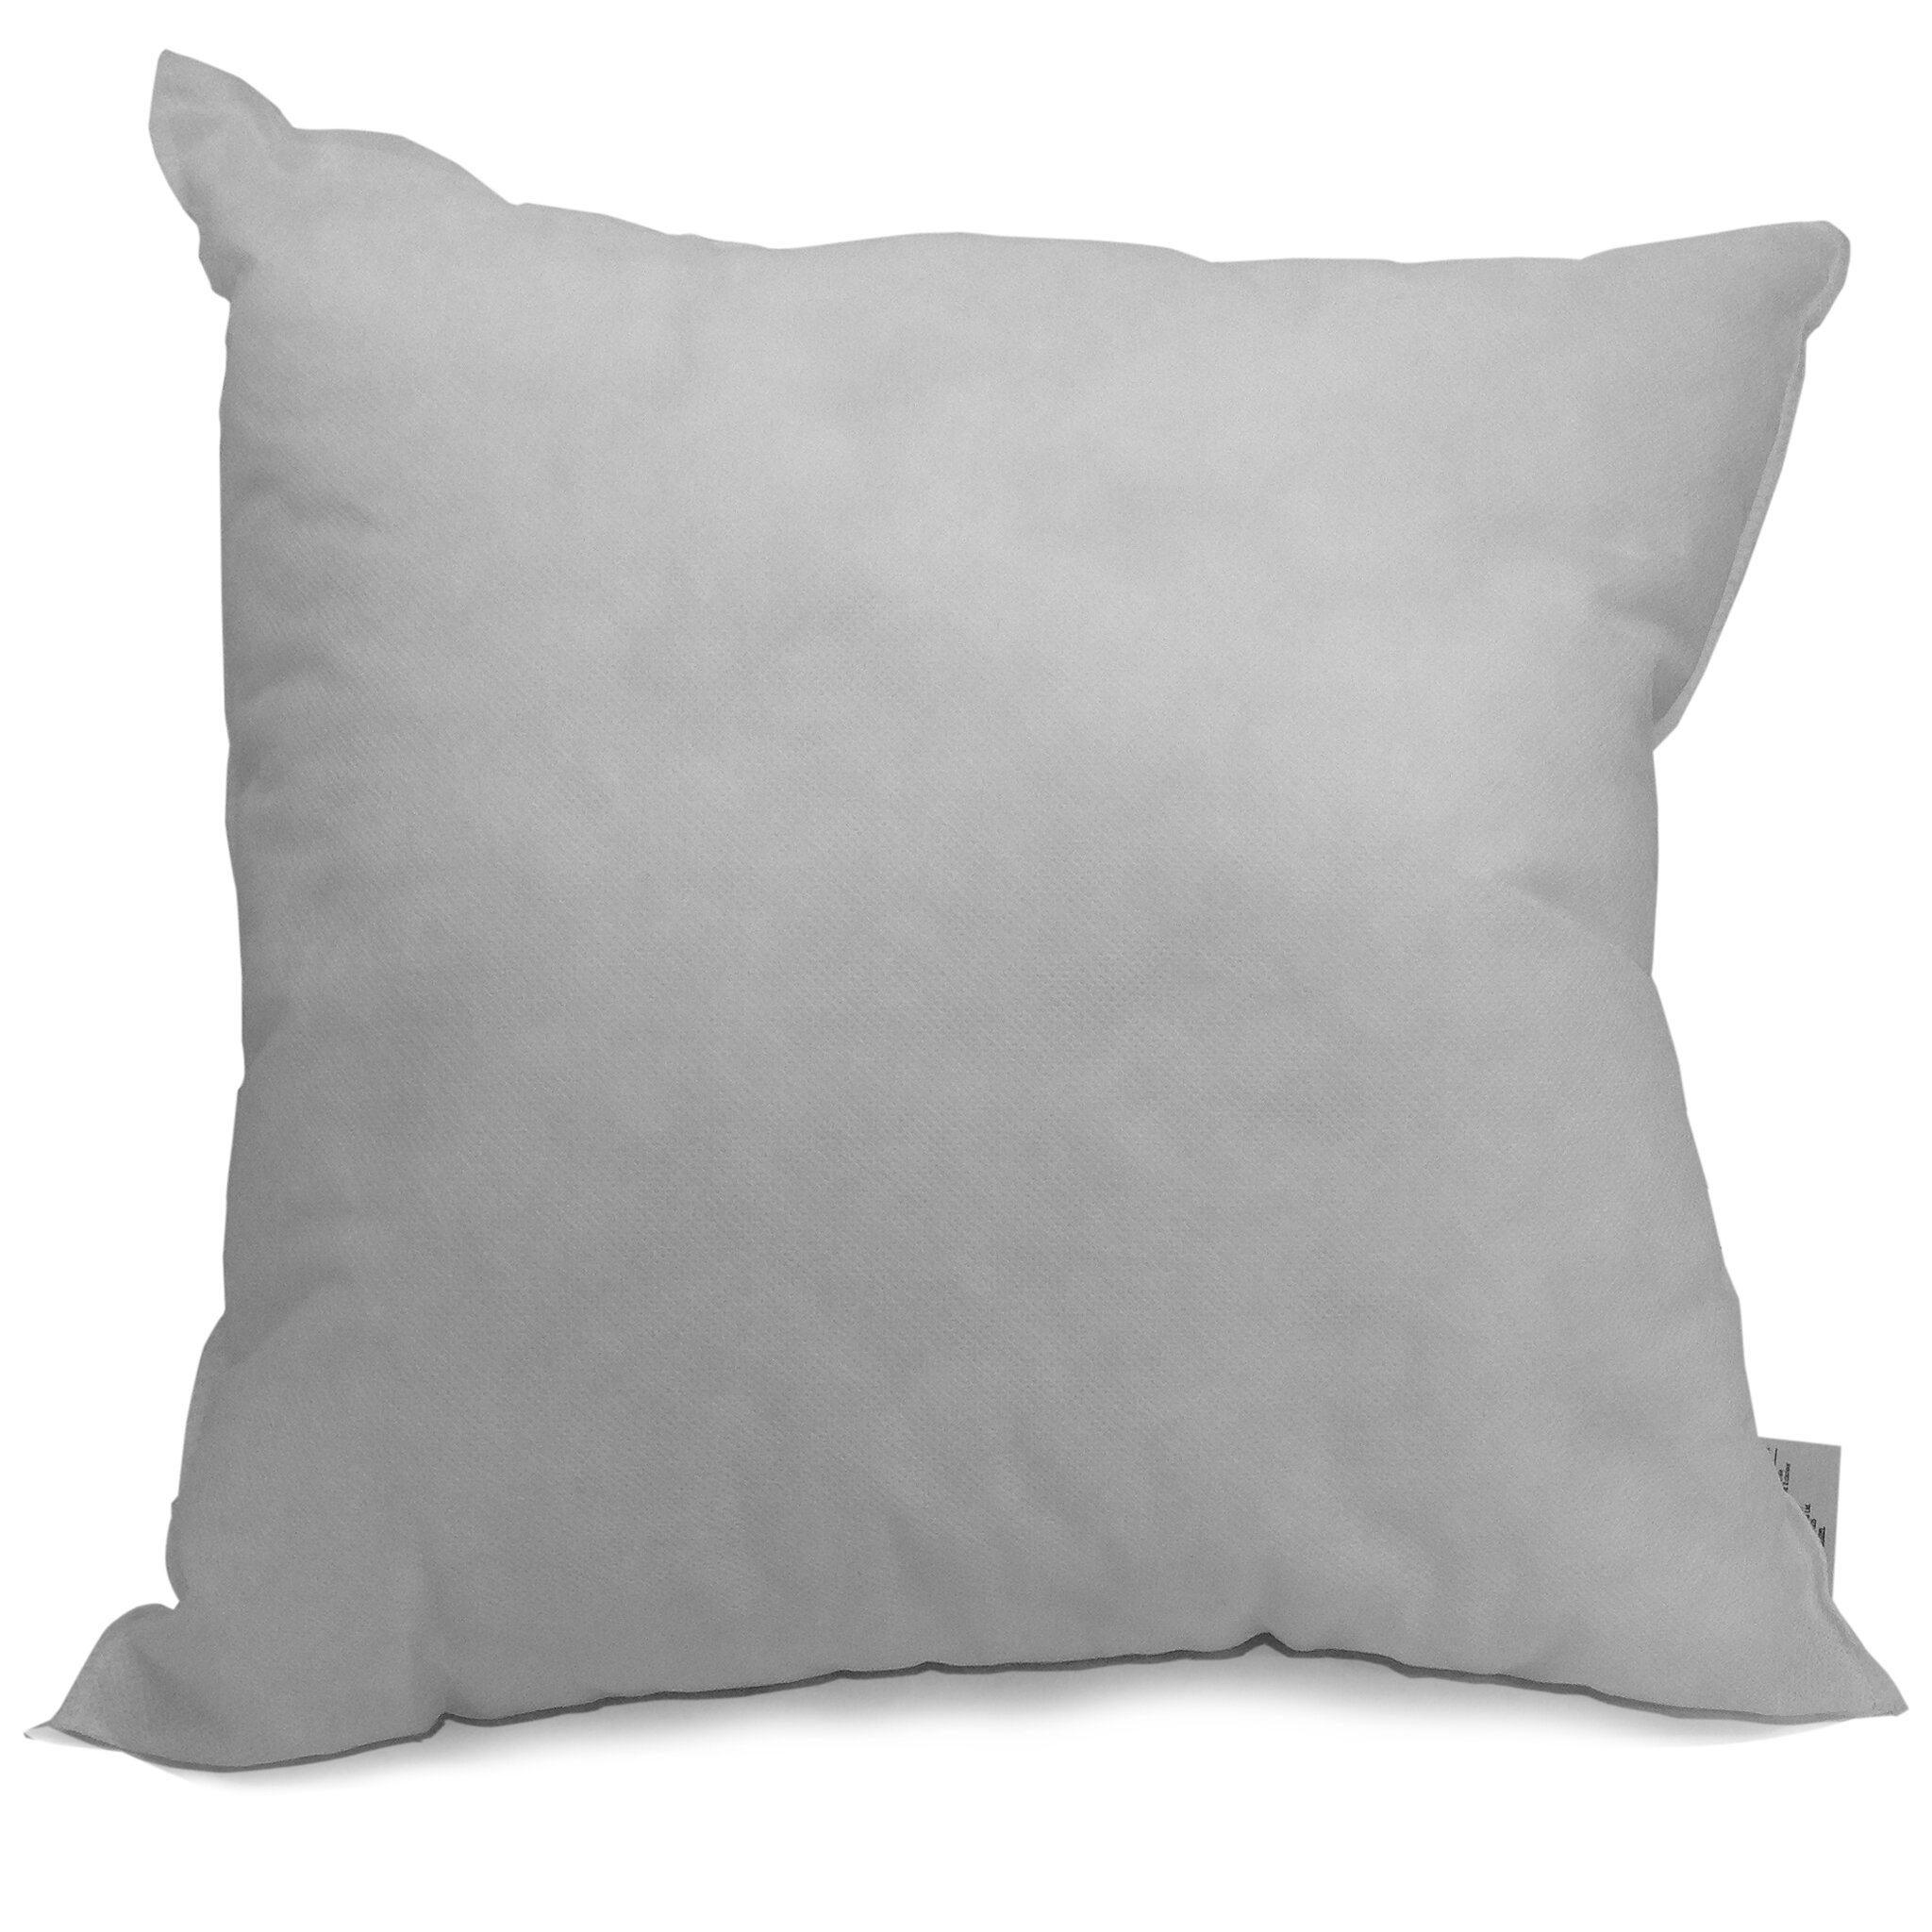 HomeTex Throw Pillow Wayfair.ca